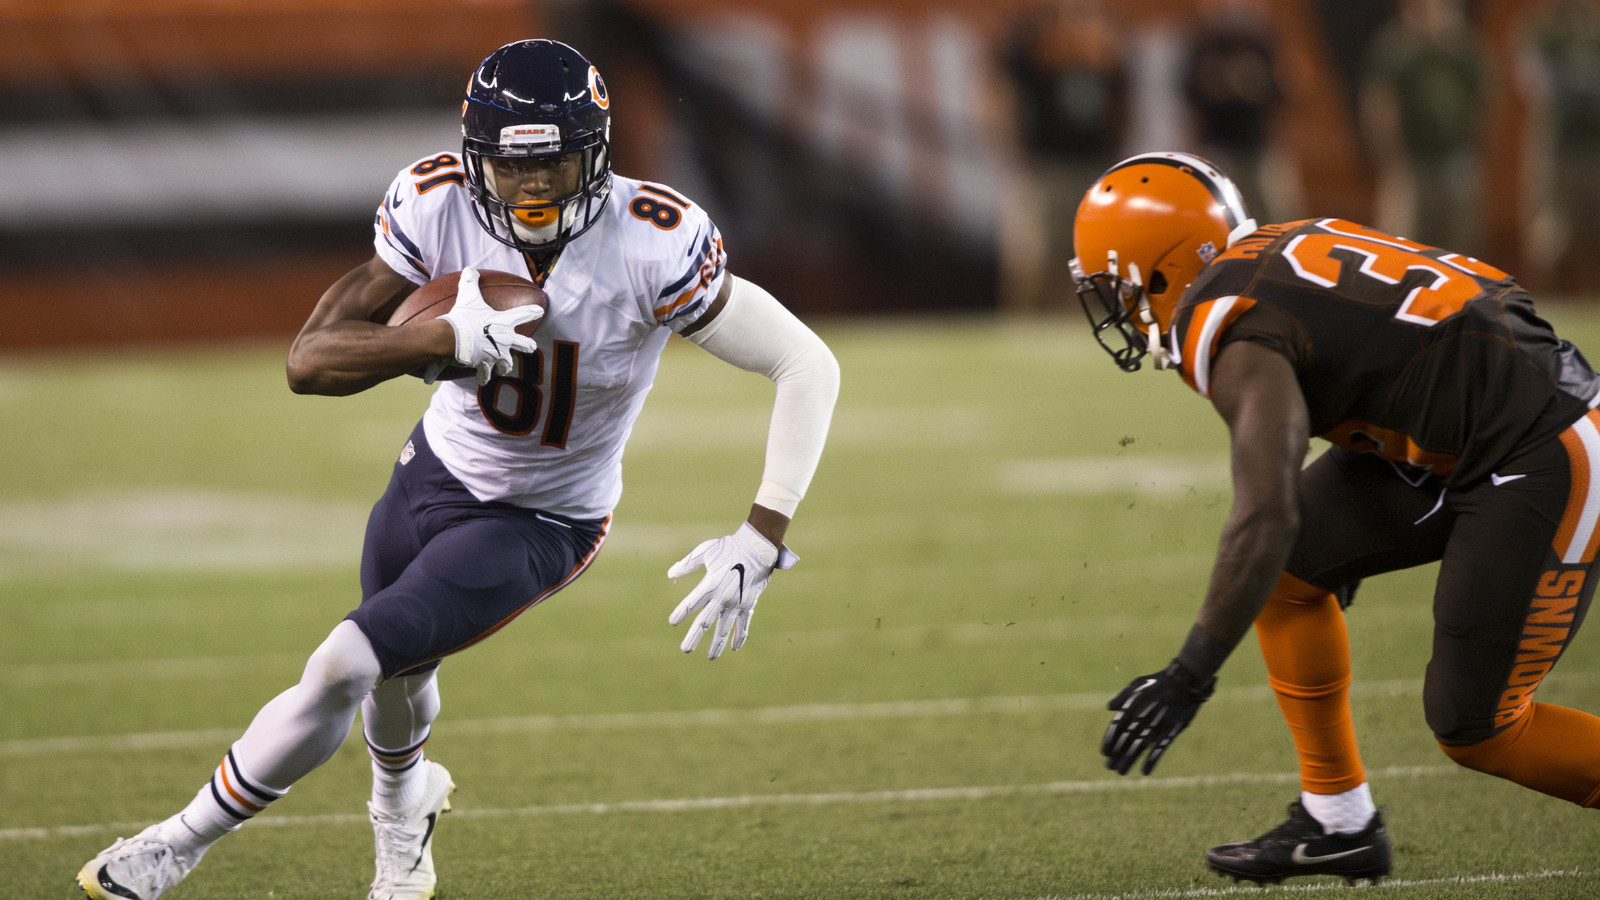 Bears Don't Match Saints' Offer To Cameron Meredith